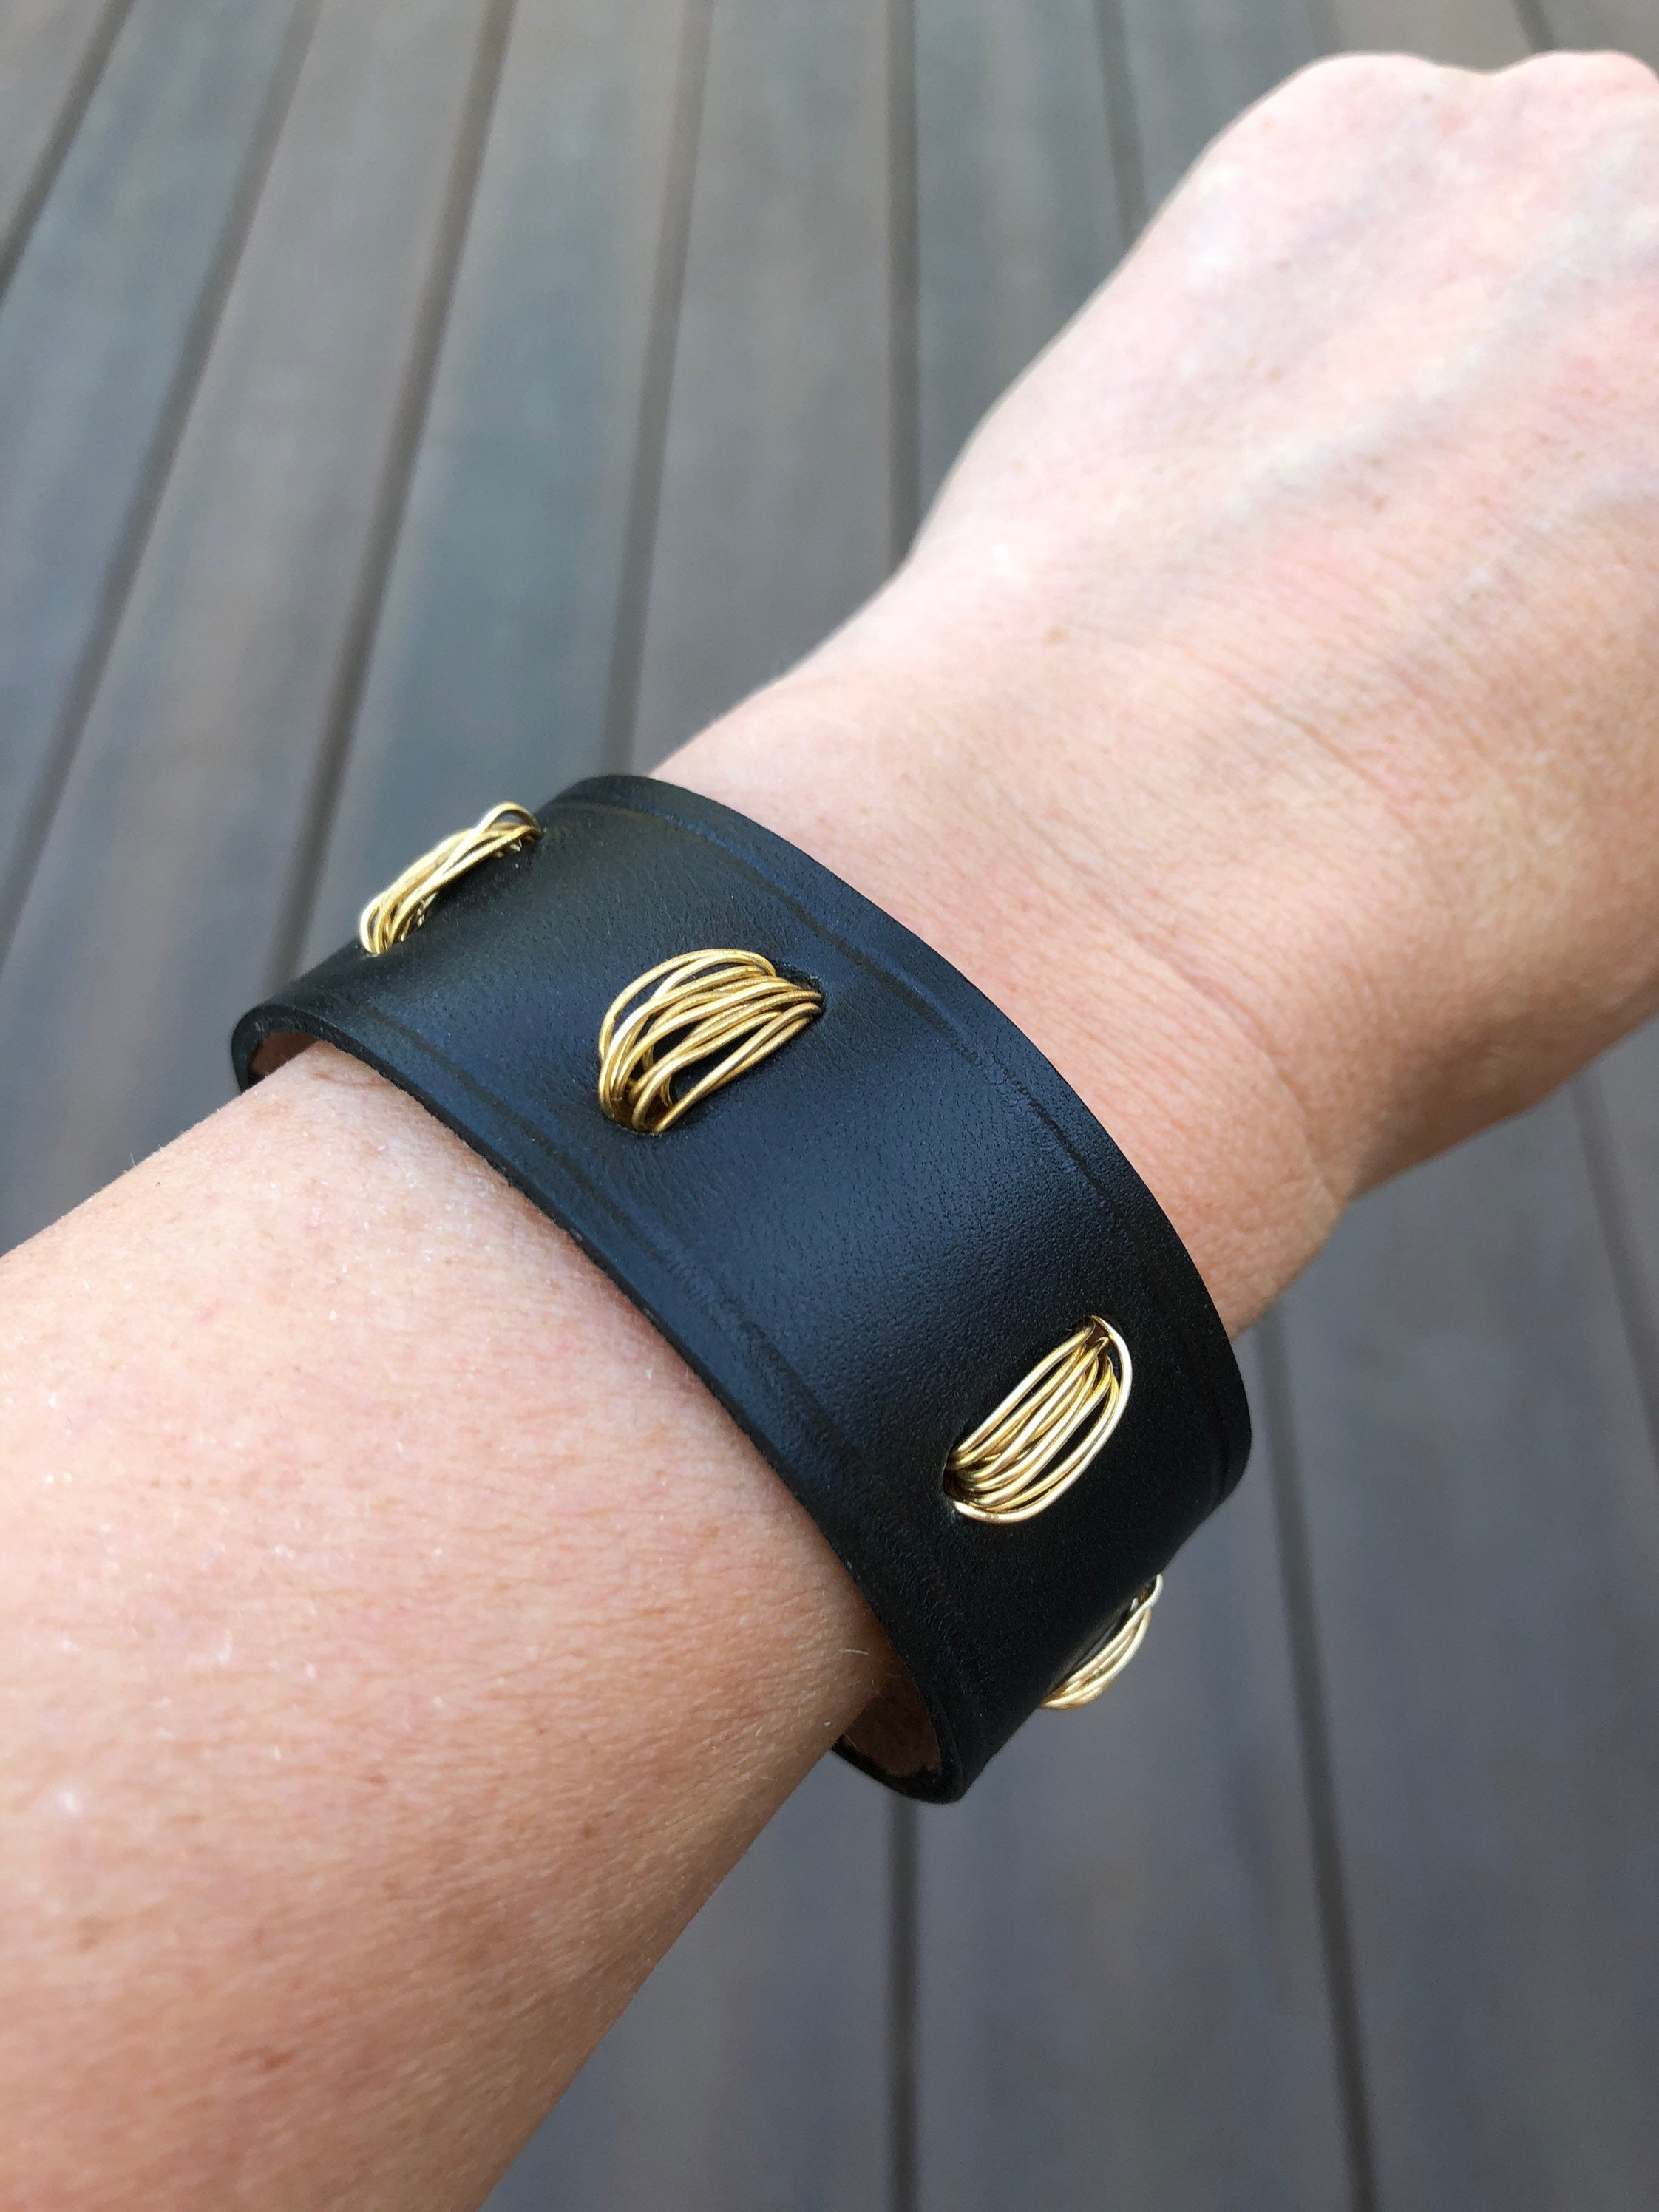 Black leather bracelet with gold wire detail, shown on wrist